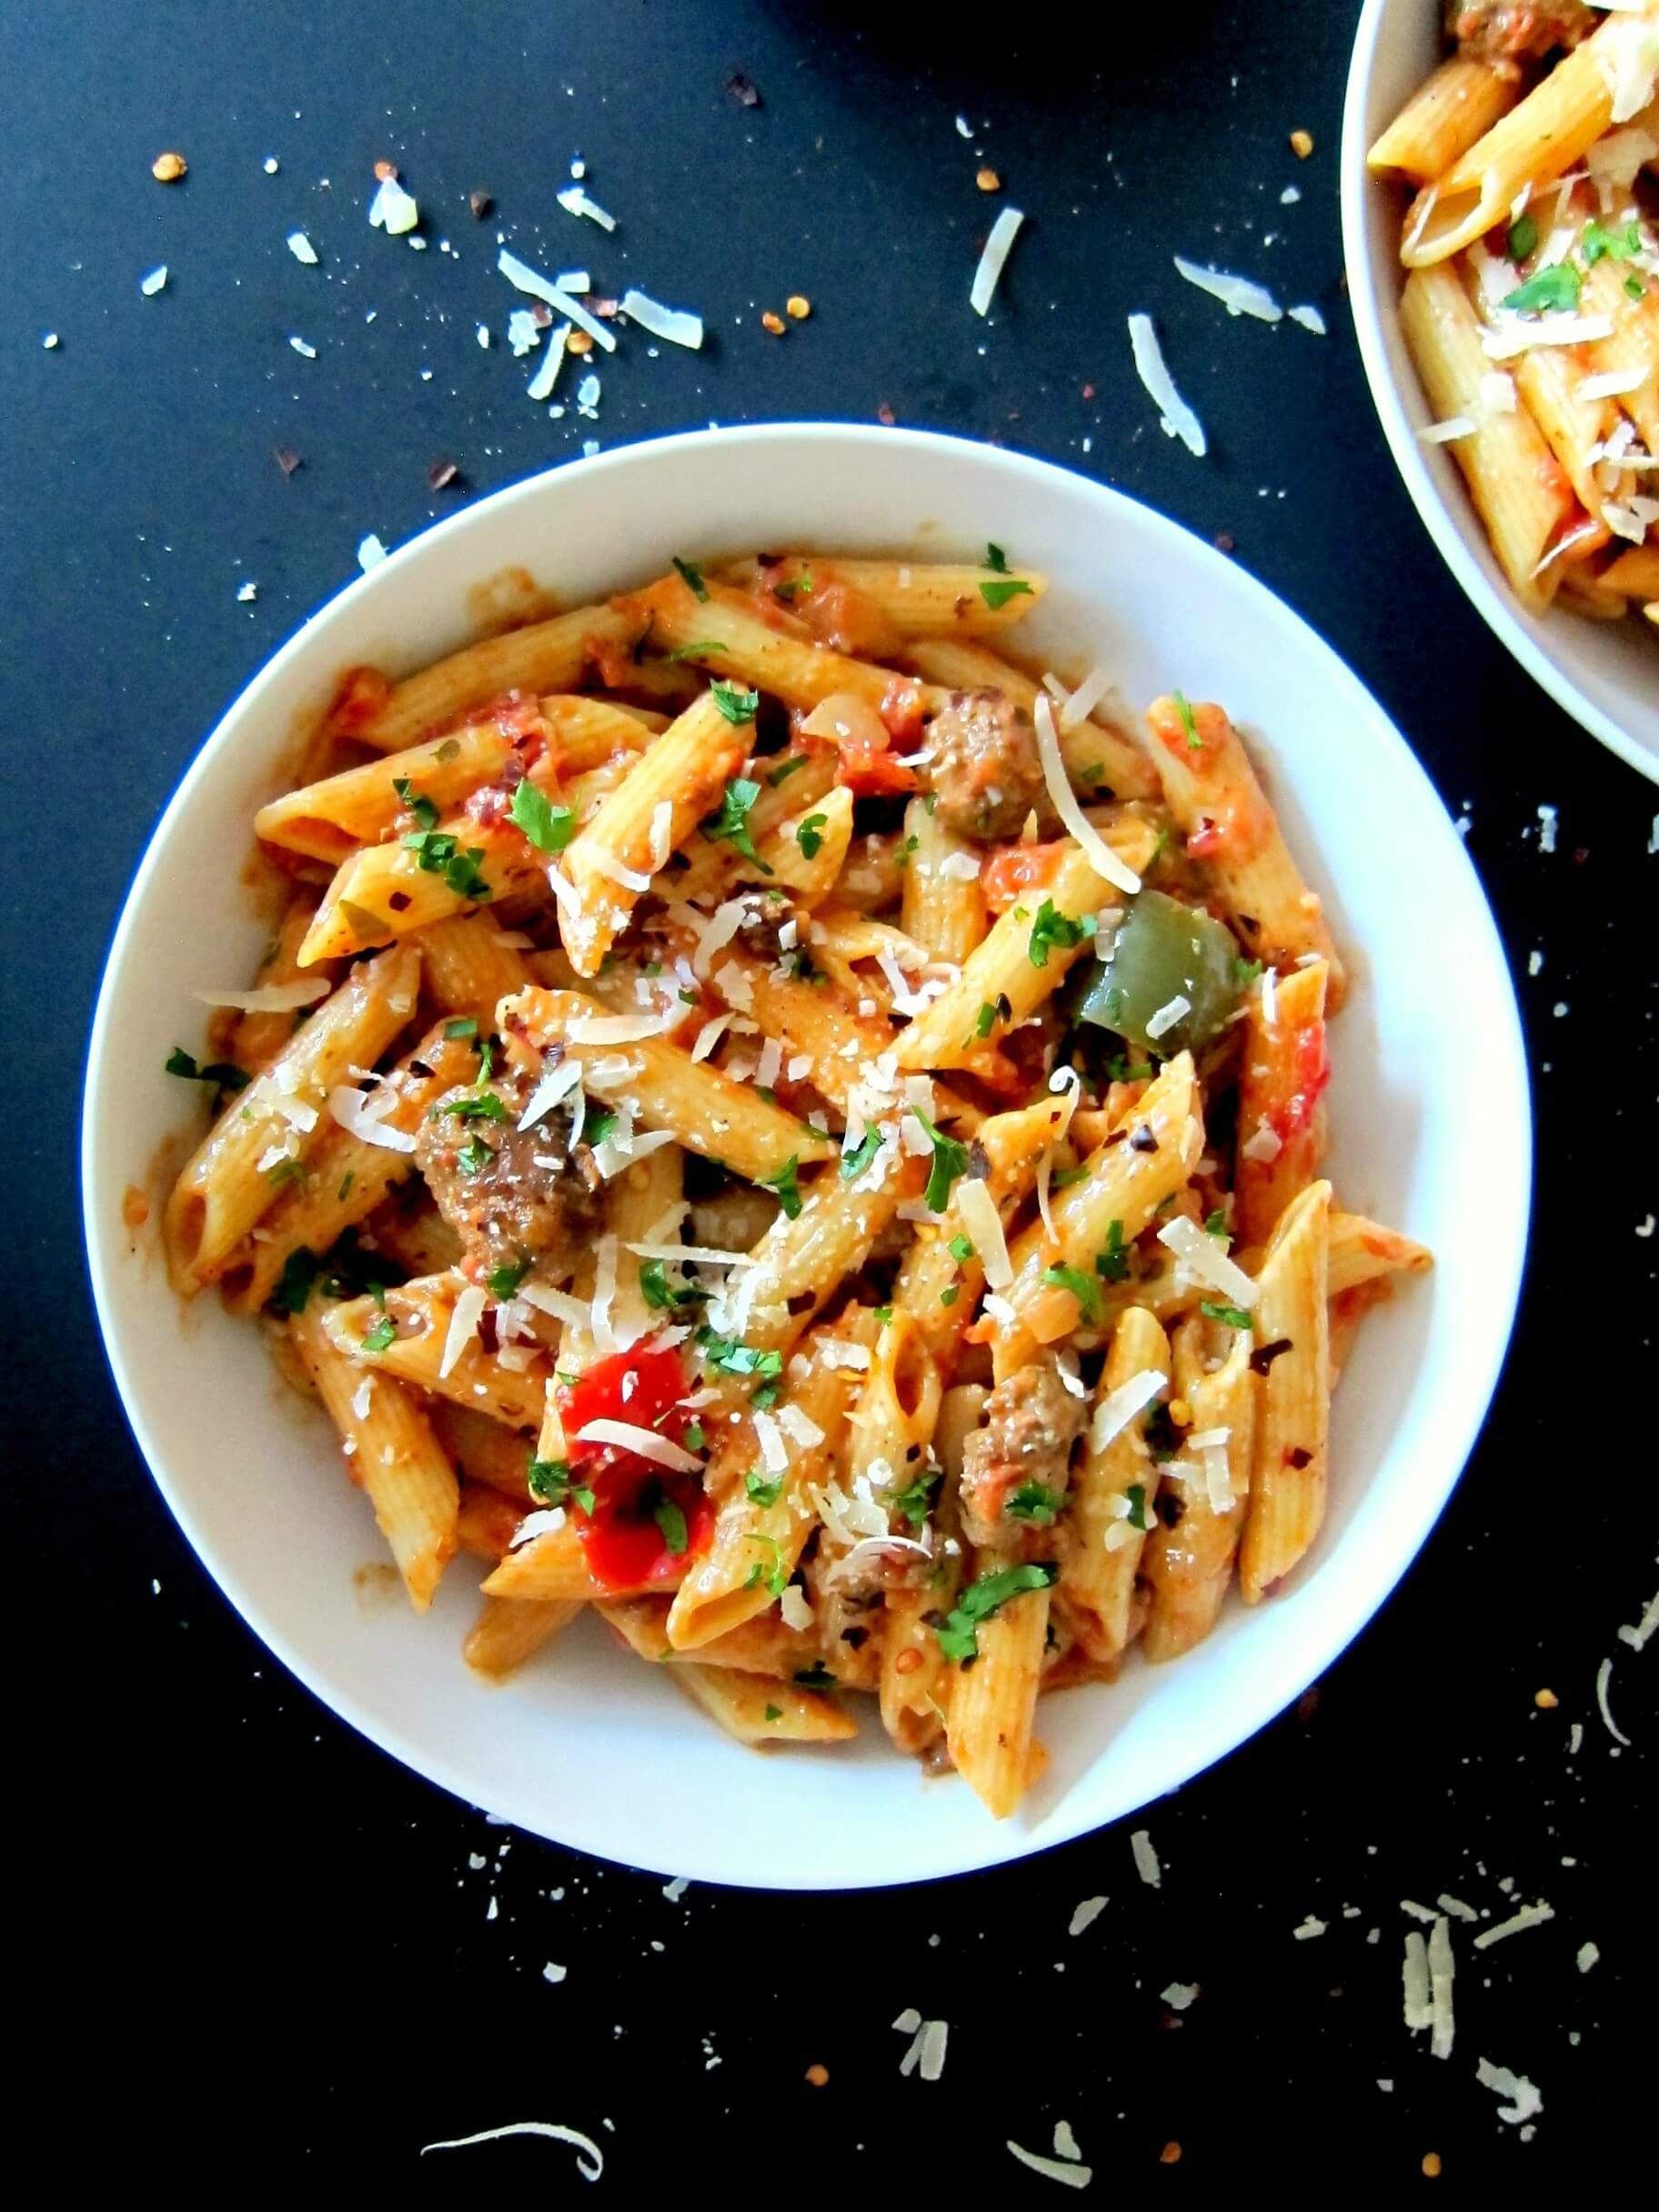 Instant Pot Pasta Penne With Sausage In Tomato Cream Sauce Paint The Kitchen Red